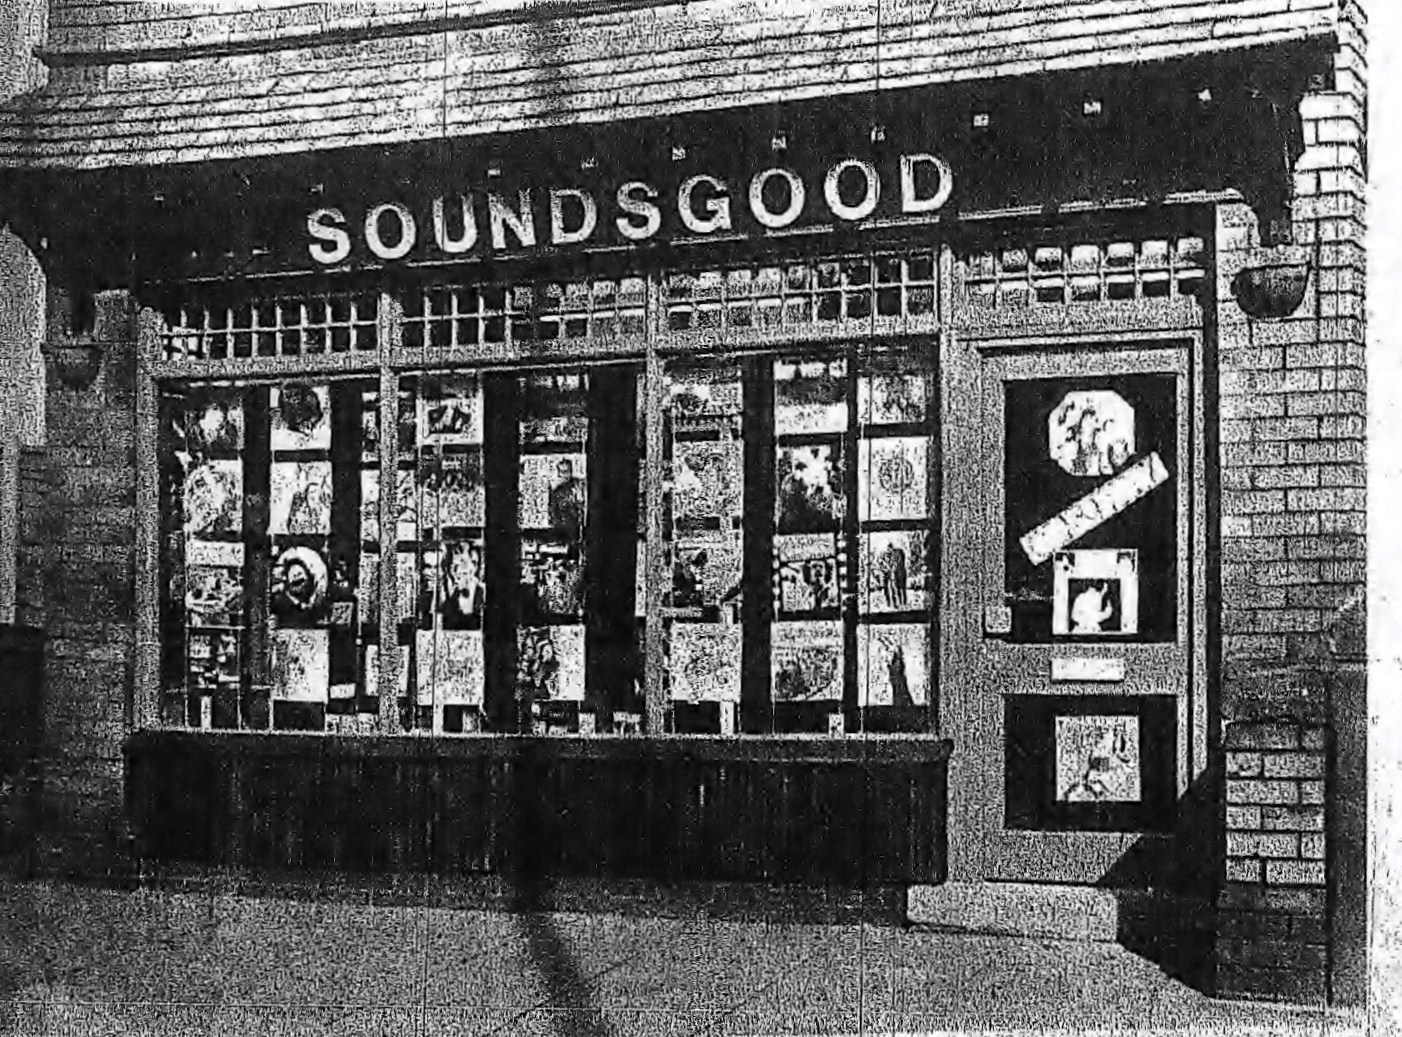 Soundsgood Records opened in 1971 on Derby Street West